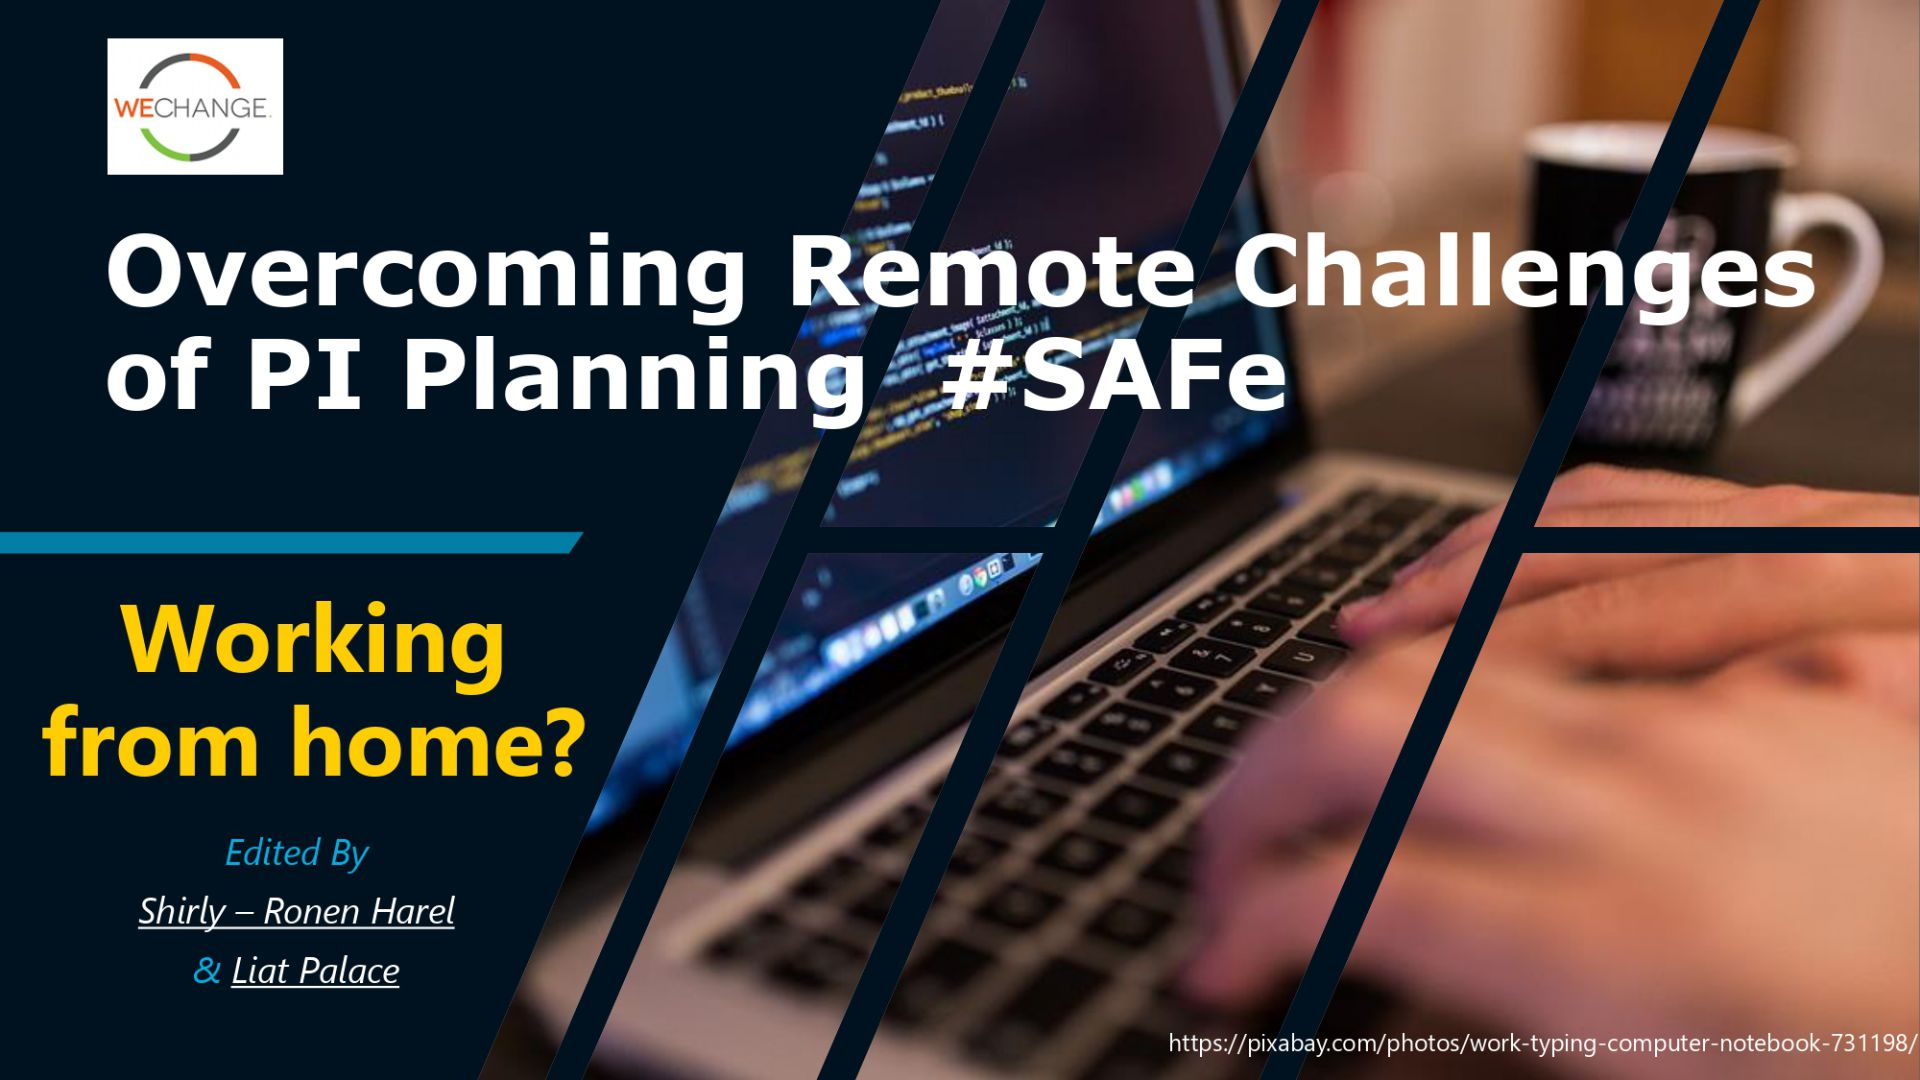 PI PlanningV2 page 0001 compressed Working from home ? Overcoming remote challenges of PI planning #SAFe